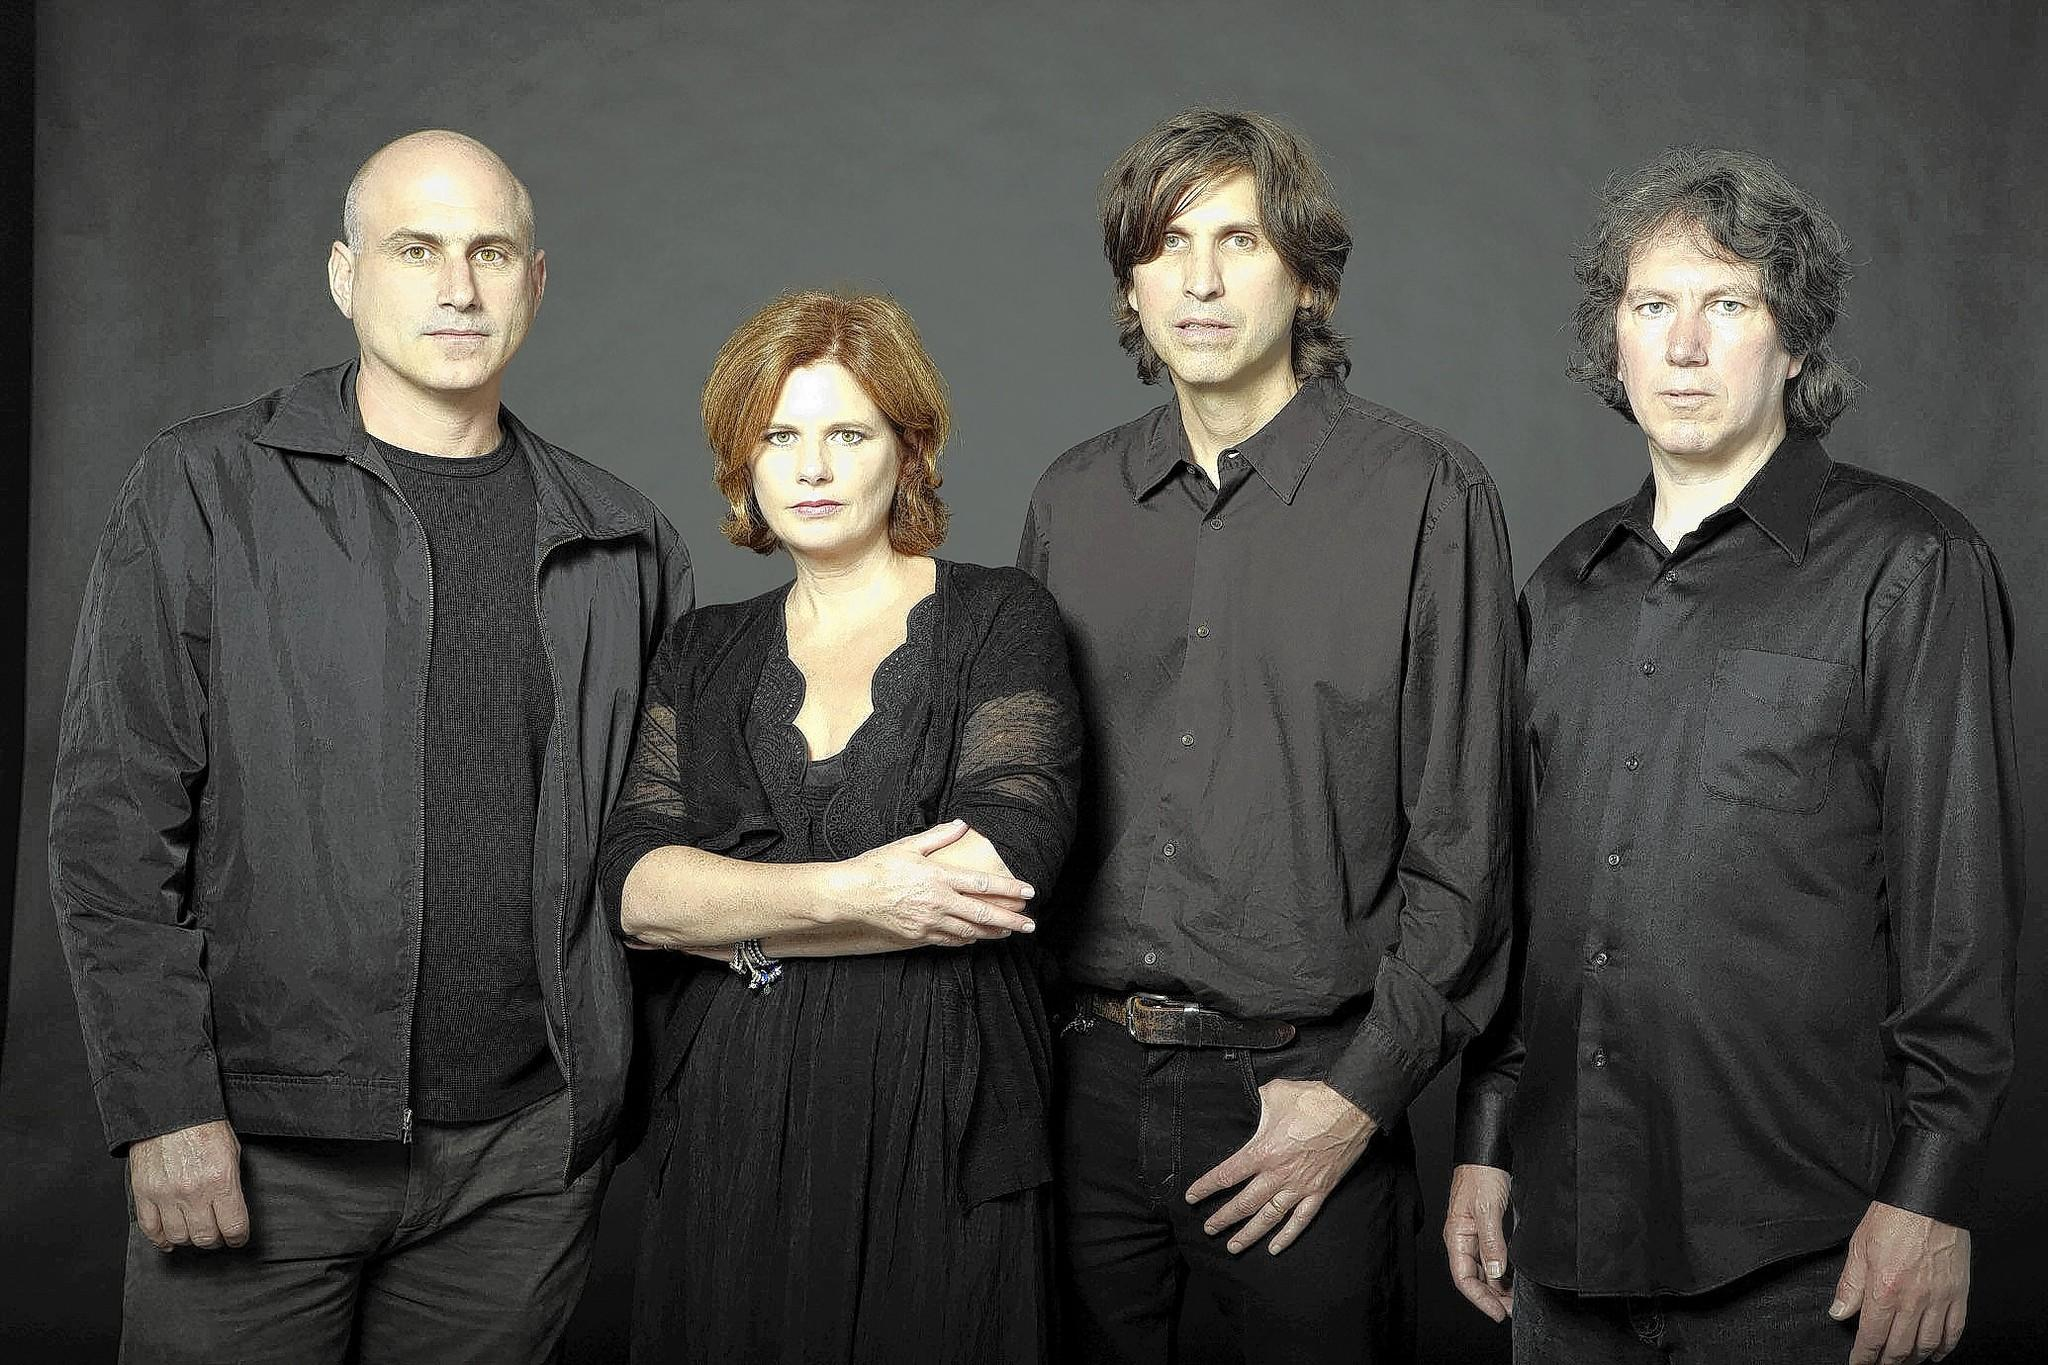 The Cowboy Junkies -- Peter Timmins, Margo Timmins, Michael Timmins, Alan Anton -- perform at Musikfest Cafe.